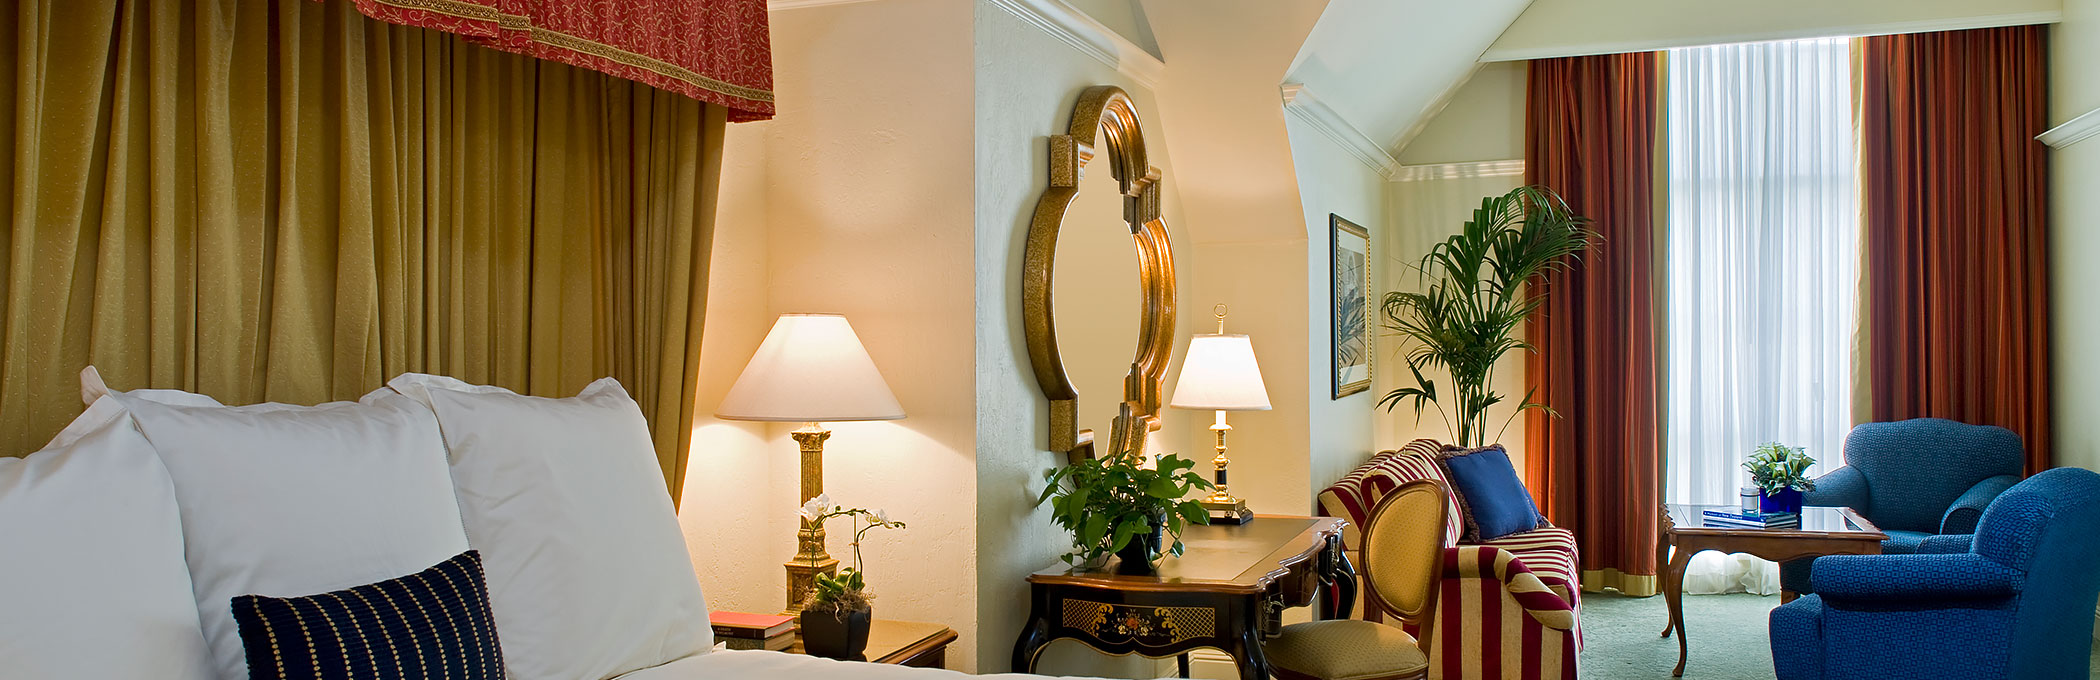 Rooms and Suites Reminiscent of the European Countryside